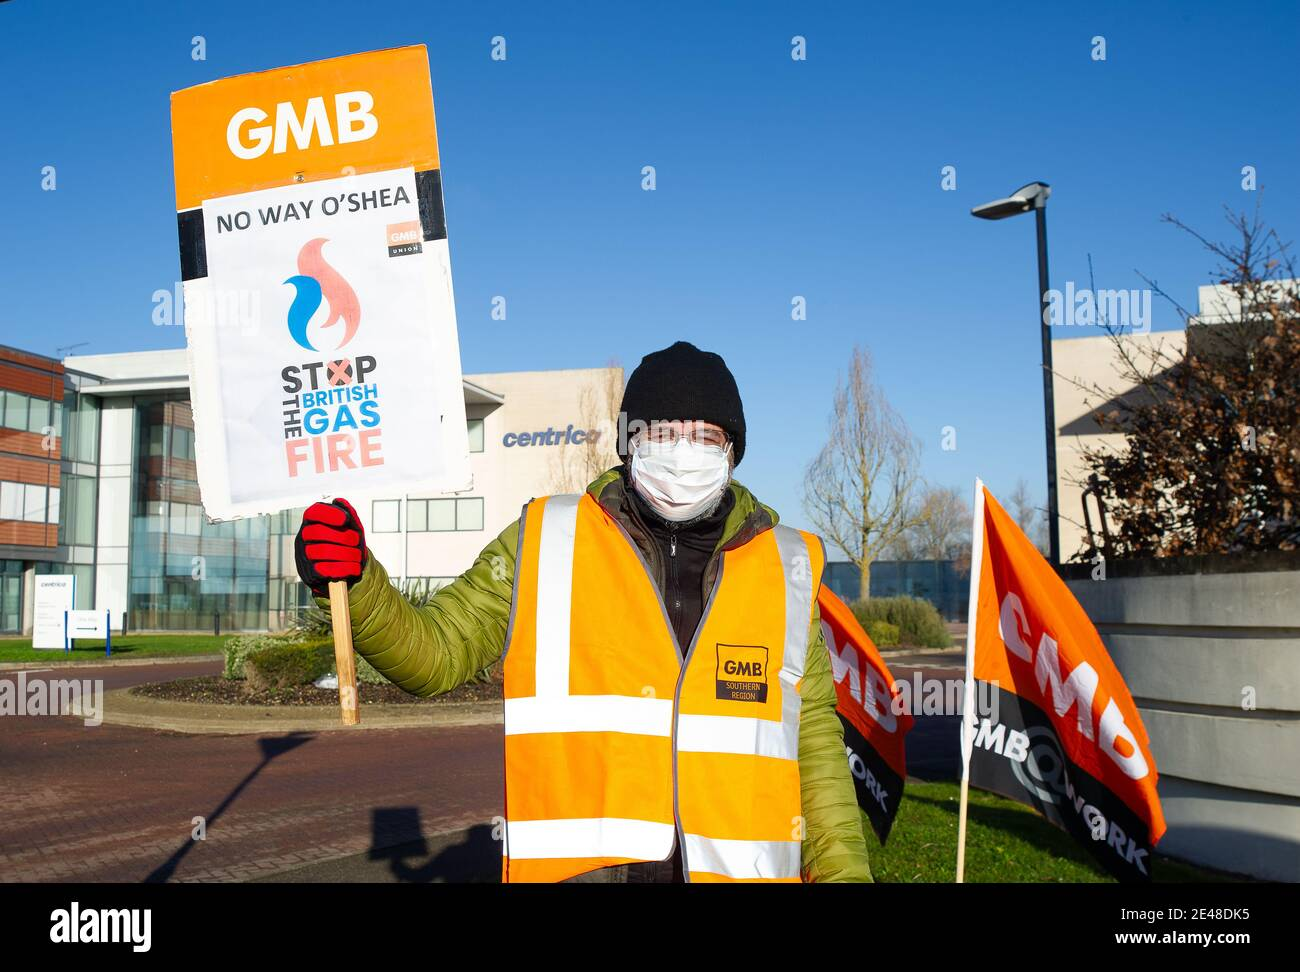 "Windsor, Berkshire, UK. 22nd January, 2021. Day six of the British Gas strike was 'rock solid' as an estimated 7,000 workers downed tools over the company's plan to sack them all. This morning British Gas Engineers burnt their ""sign or be fired"" contracts outside the head office of parent company Centrica. British Gas engineers and staff voted overwhelmingly by 89%  to strike after the boss of parent company Centrica Chris O'Shea, threatened to fire them all if they didn't ""accept"" cuts to pay and terms and conditions. Credit: Maureen McLean/Alamy Live News Stock Photo"